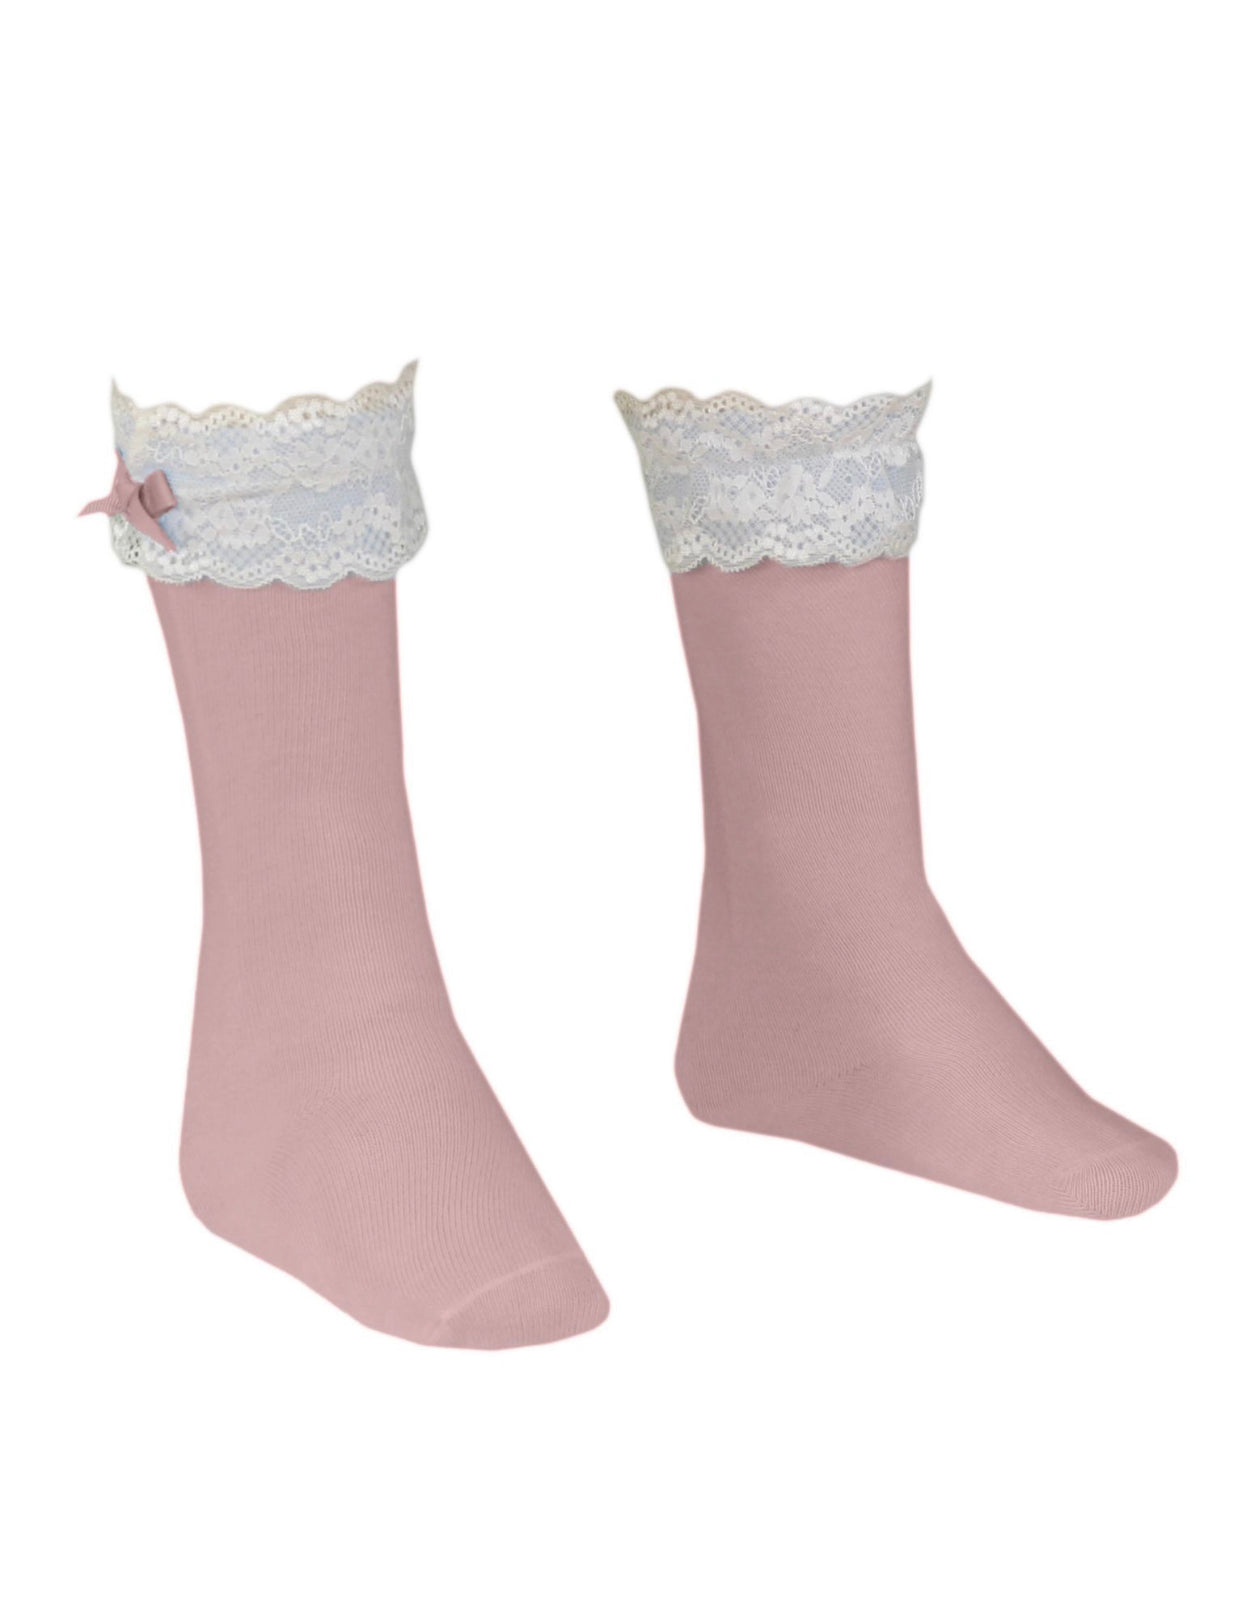 MIRANDA Dusty Pink knee high socks with frilly details